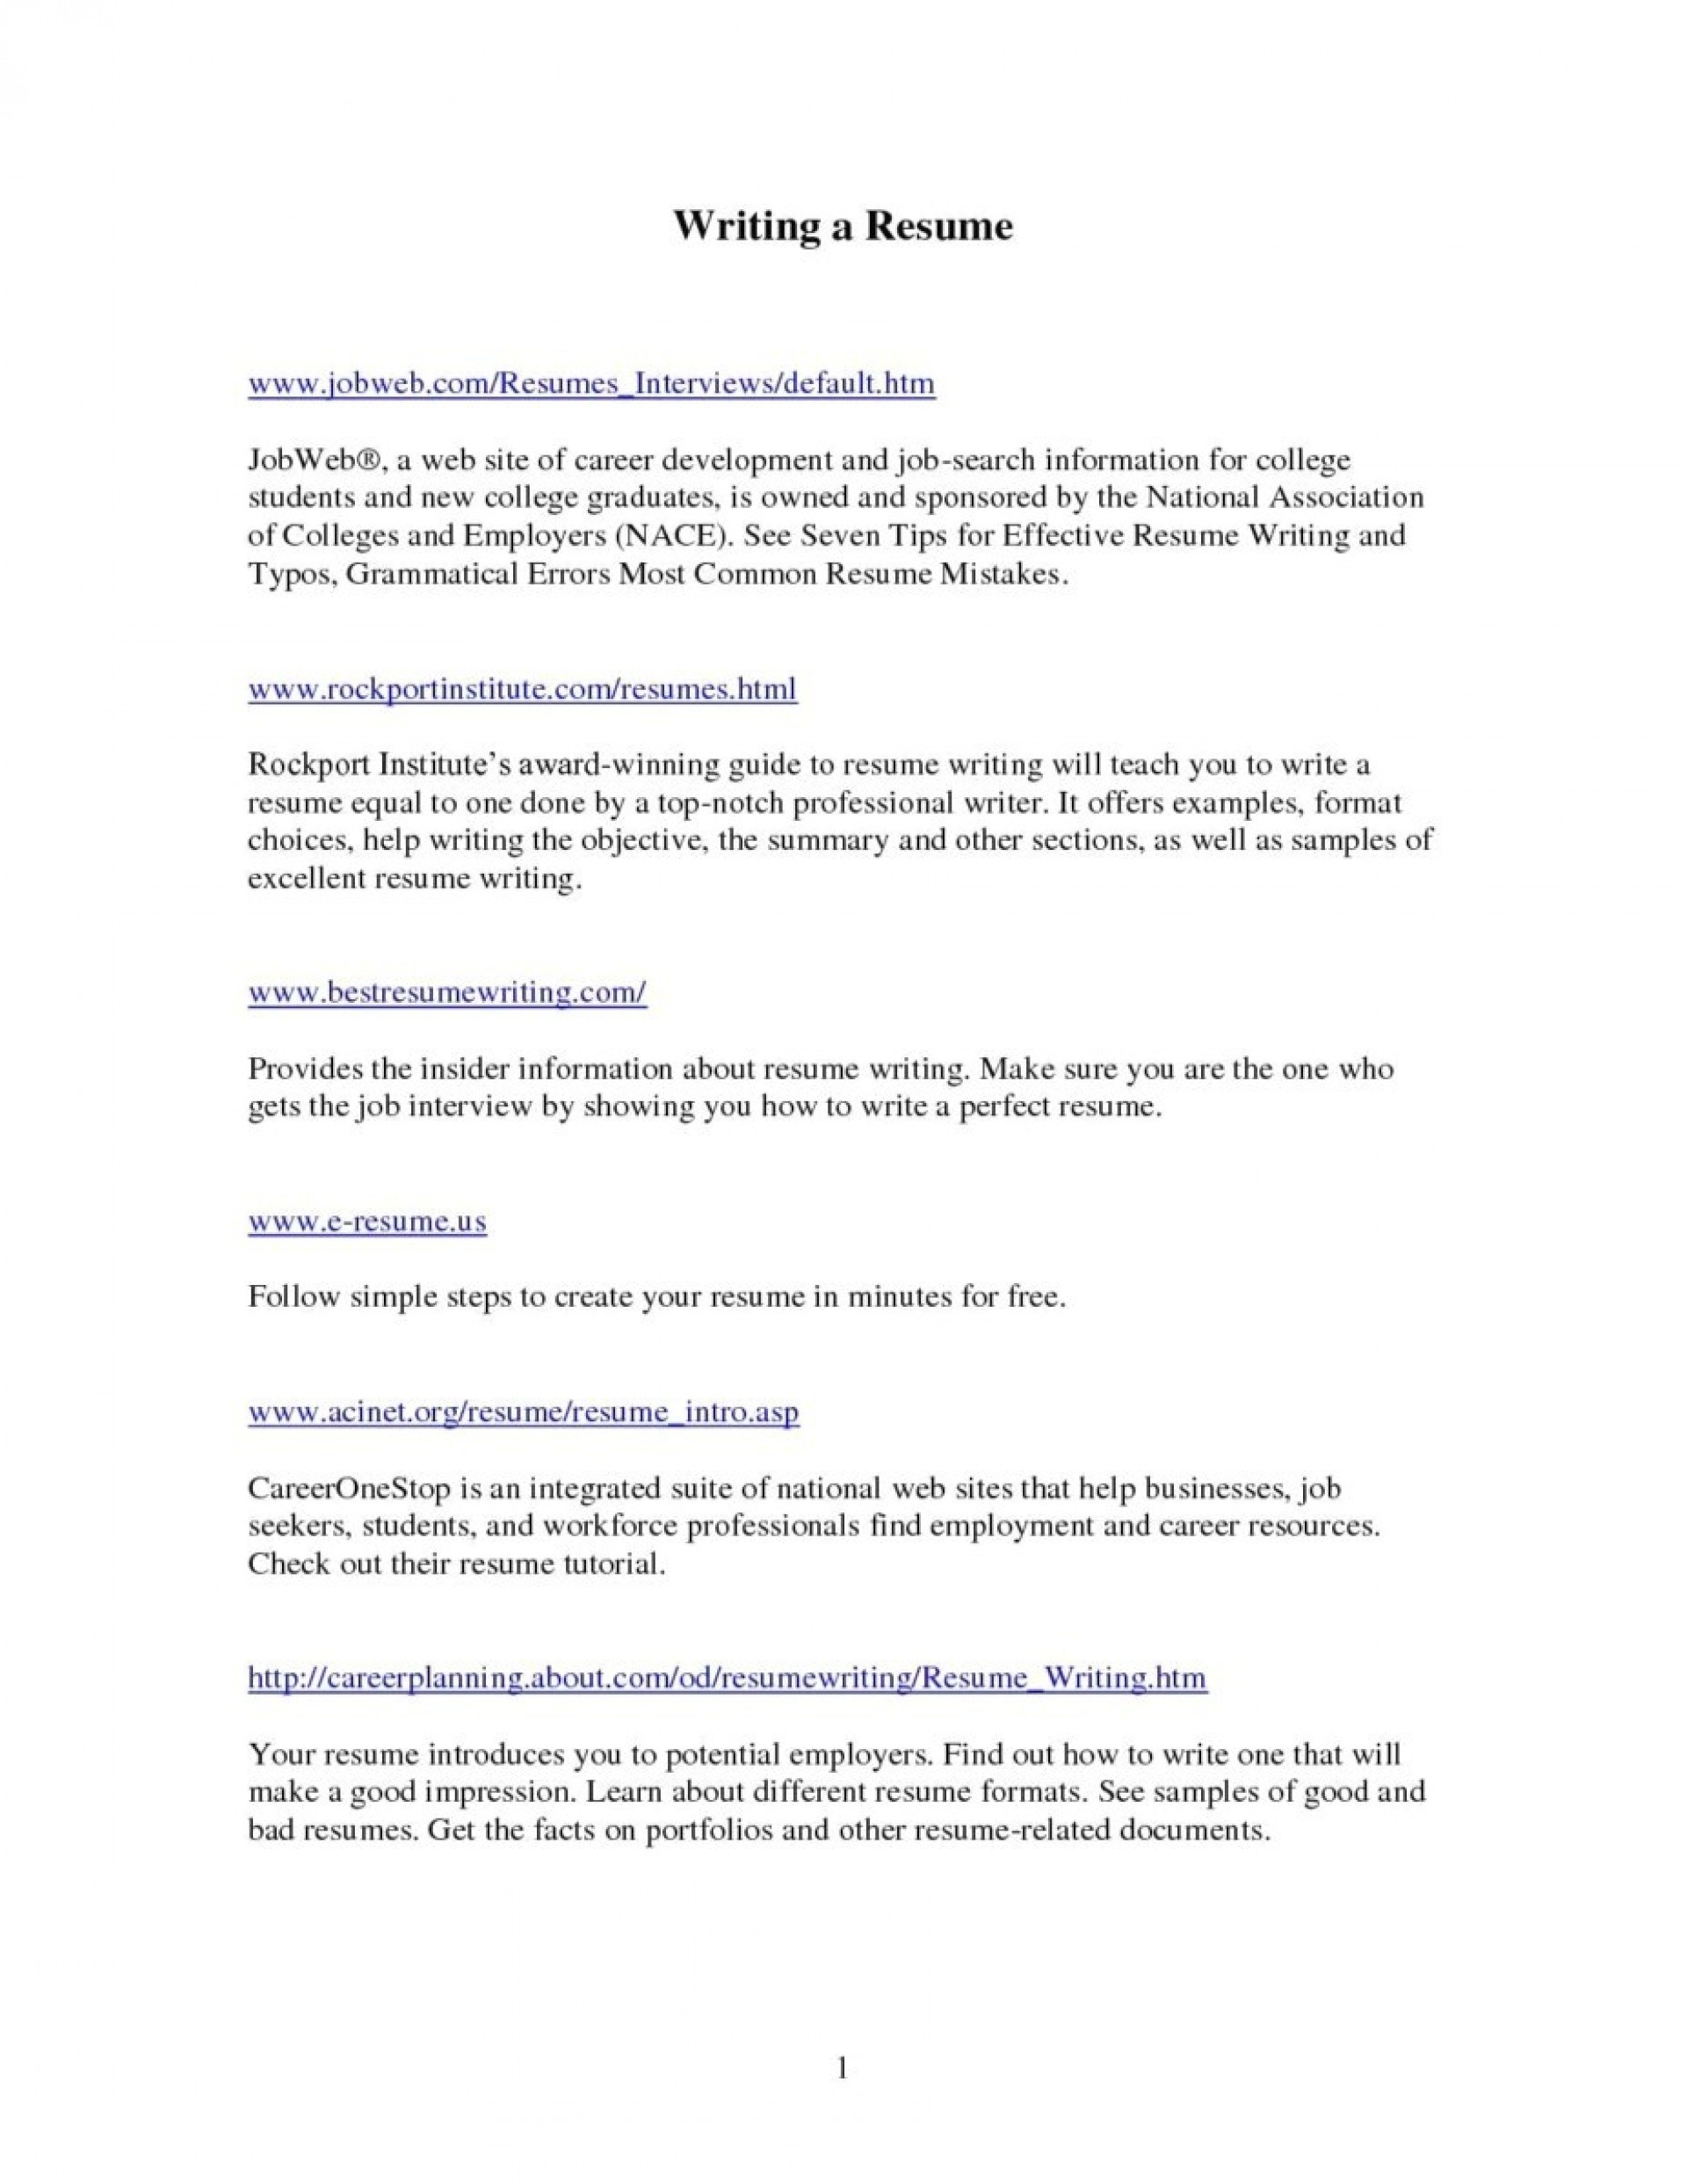 004 How To Make An Apa Research Paper Outline Resume Writing Service Reviews Format Best Writers Inspirational Help Professional Of Free Astounding For A Style 1920